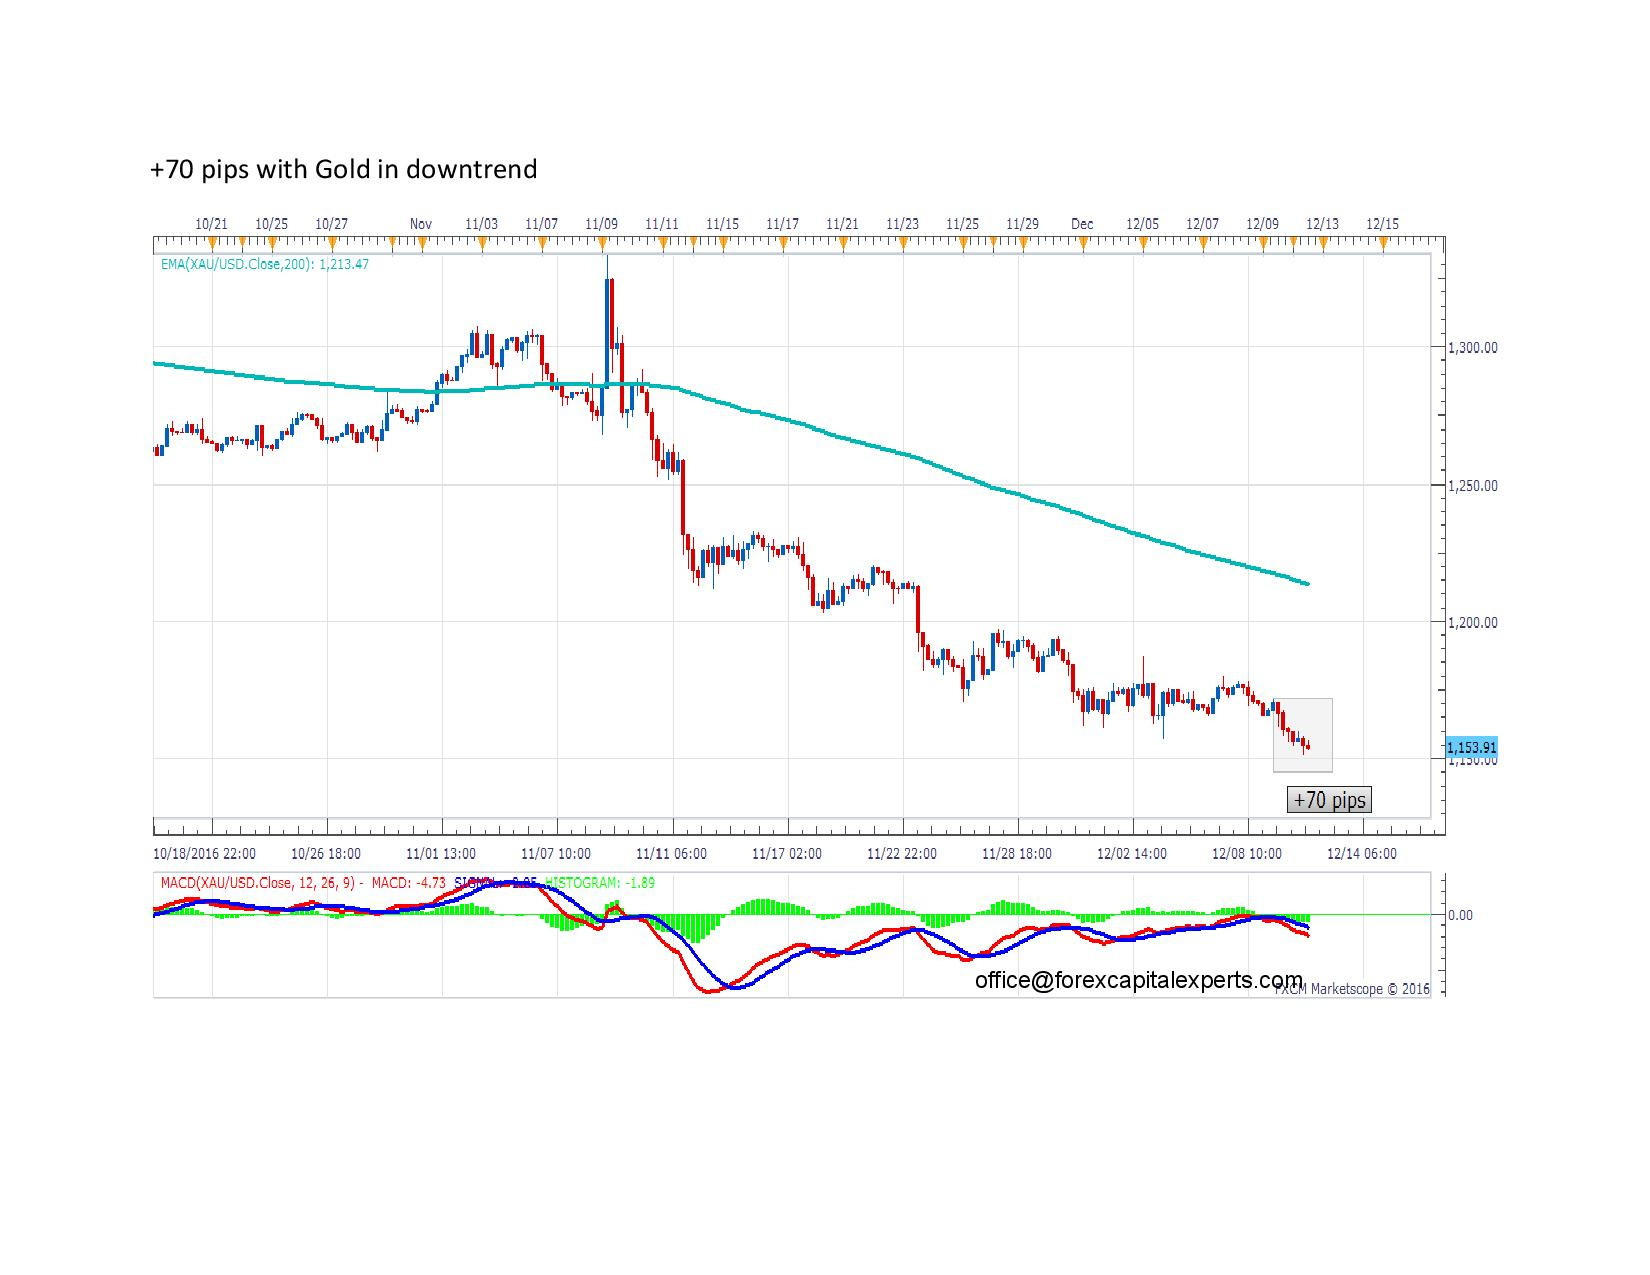 70 pips with Gold in downtrend page 001